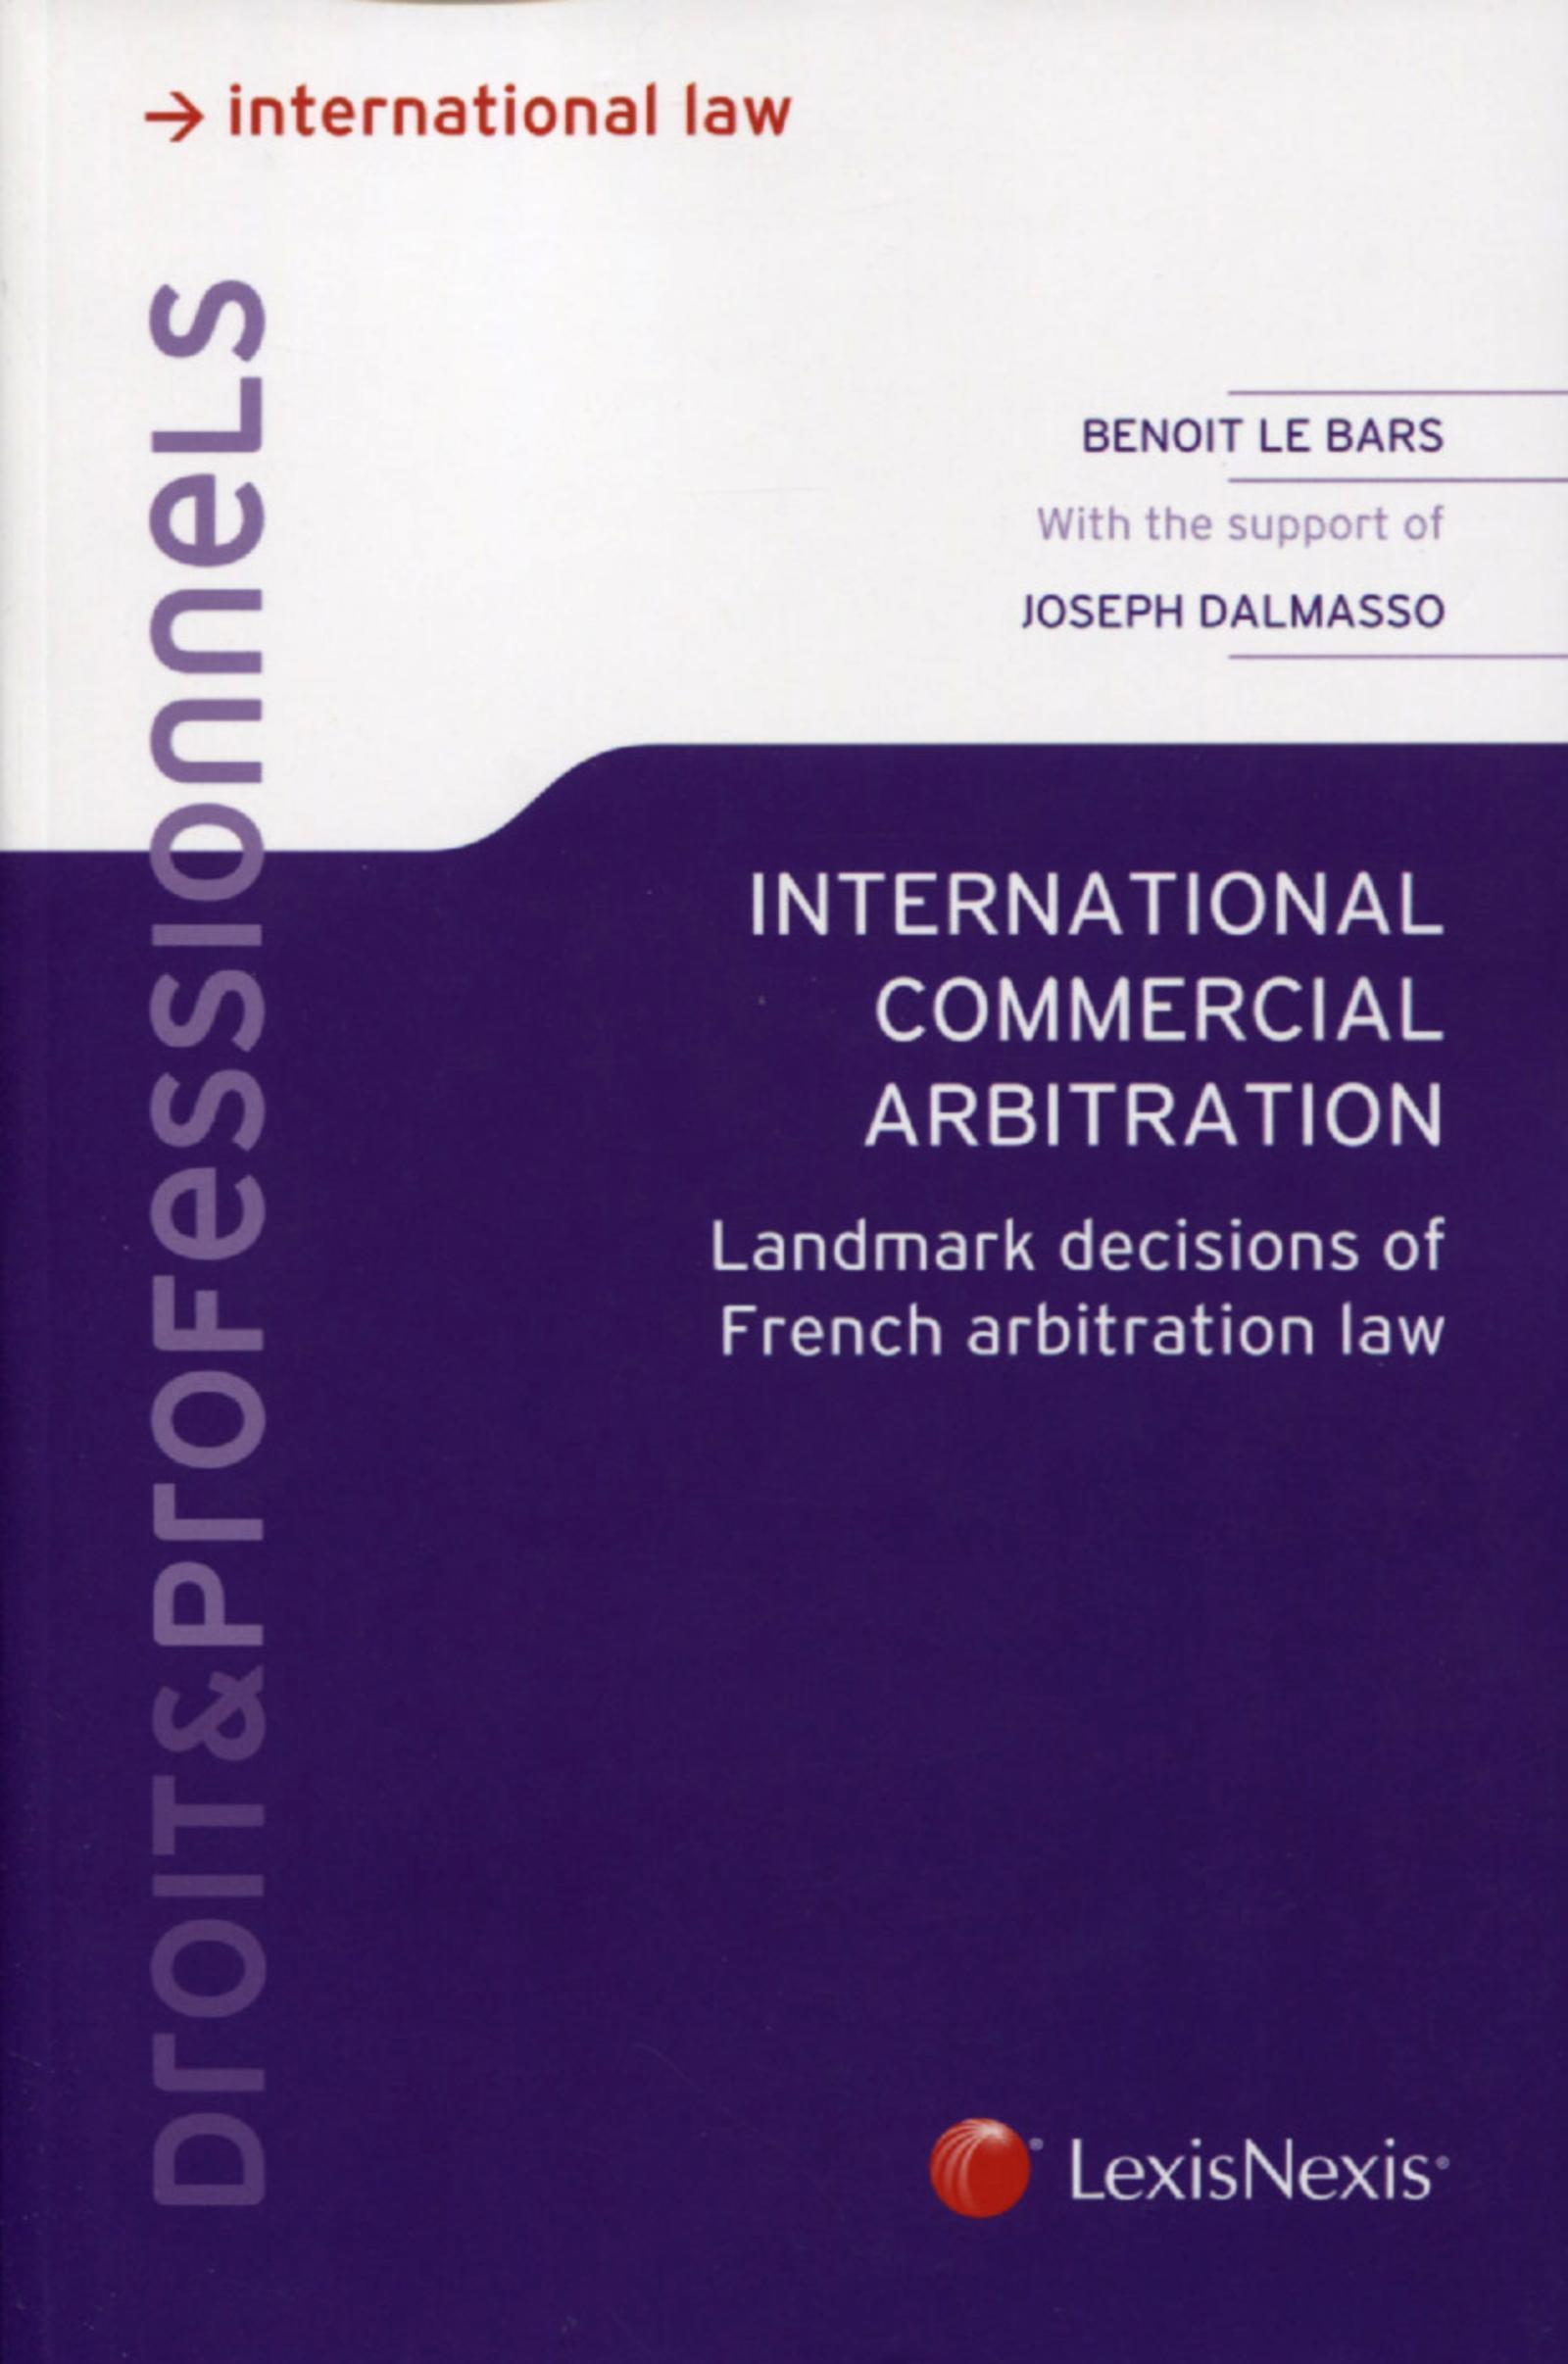 INTERNATIONAL COMMERCIAL ARBITRATION - LANDMARK DECISIONS OF FRENCH ARBITRATION LAW